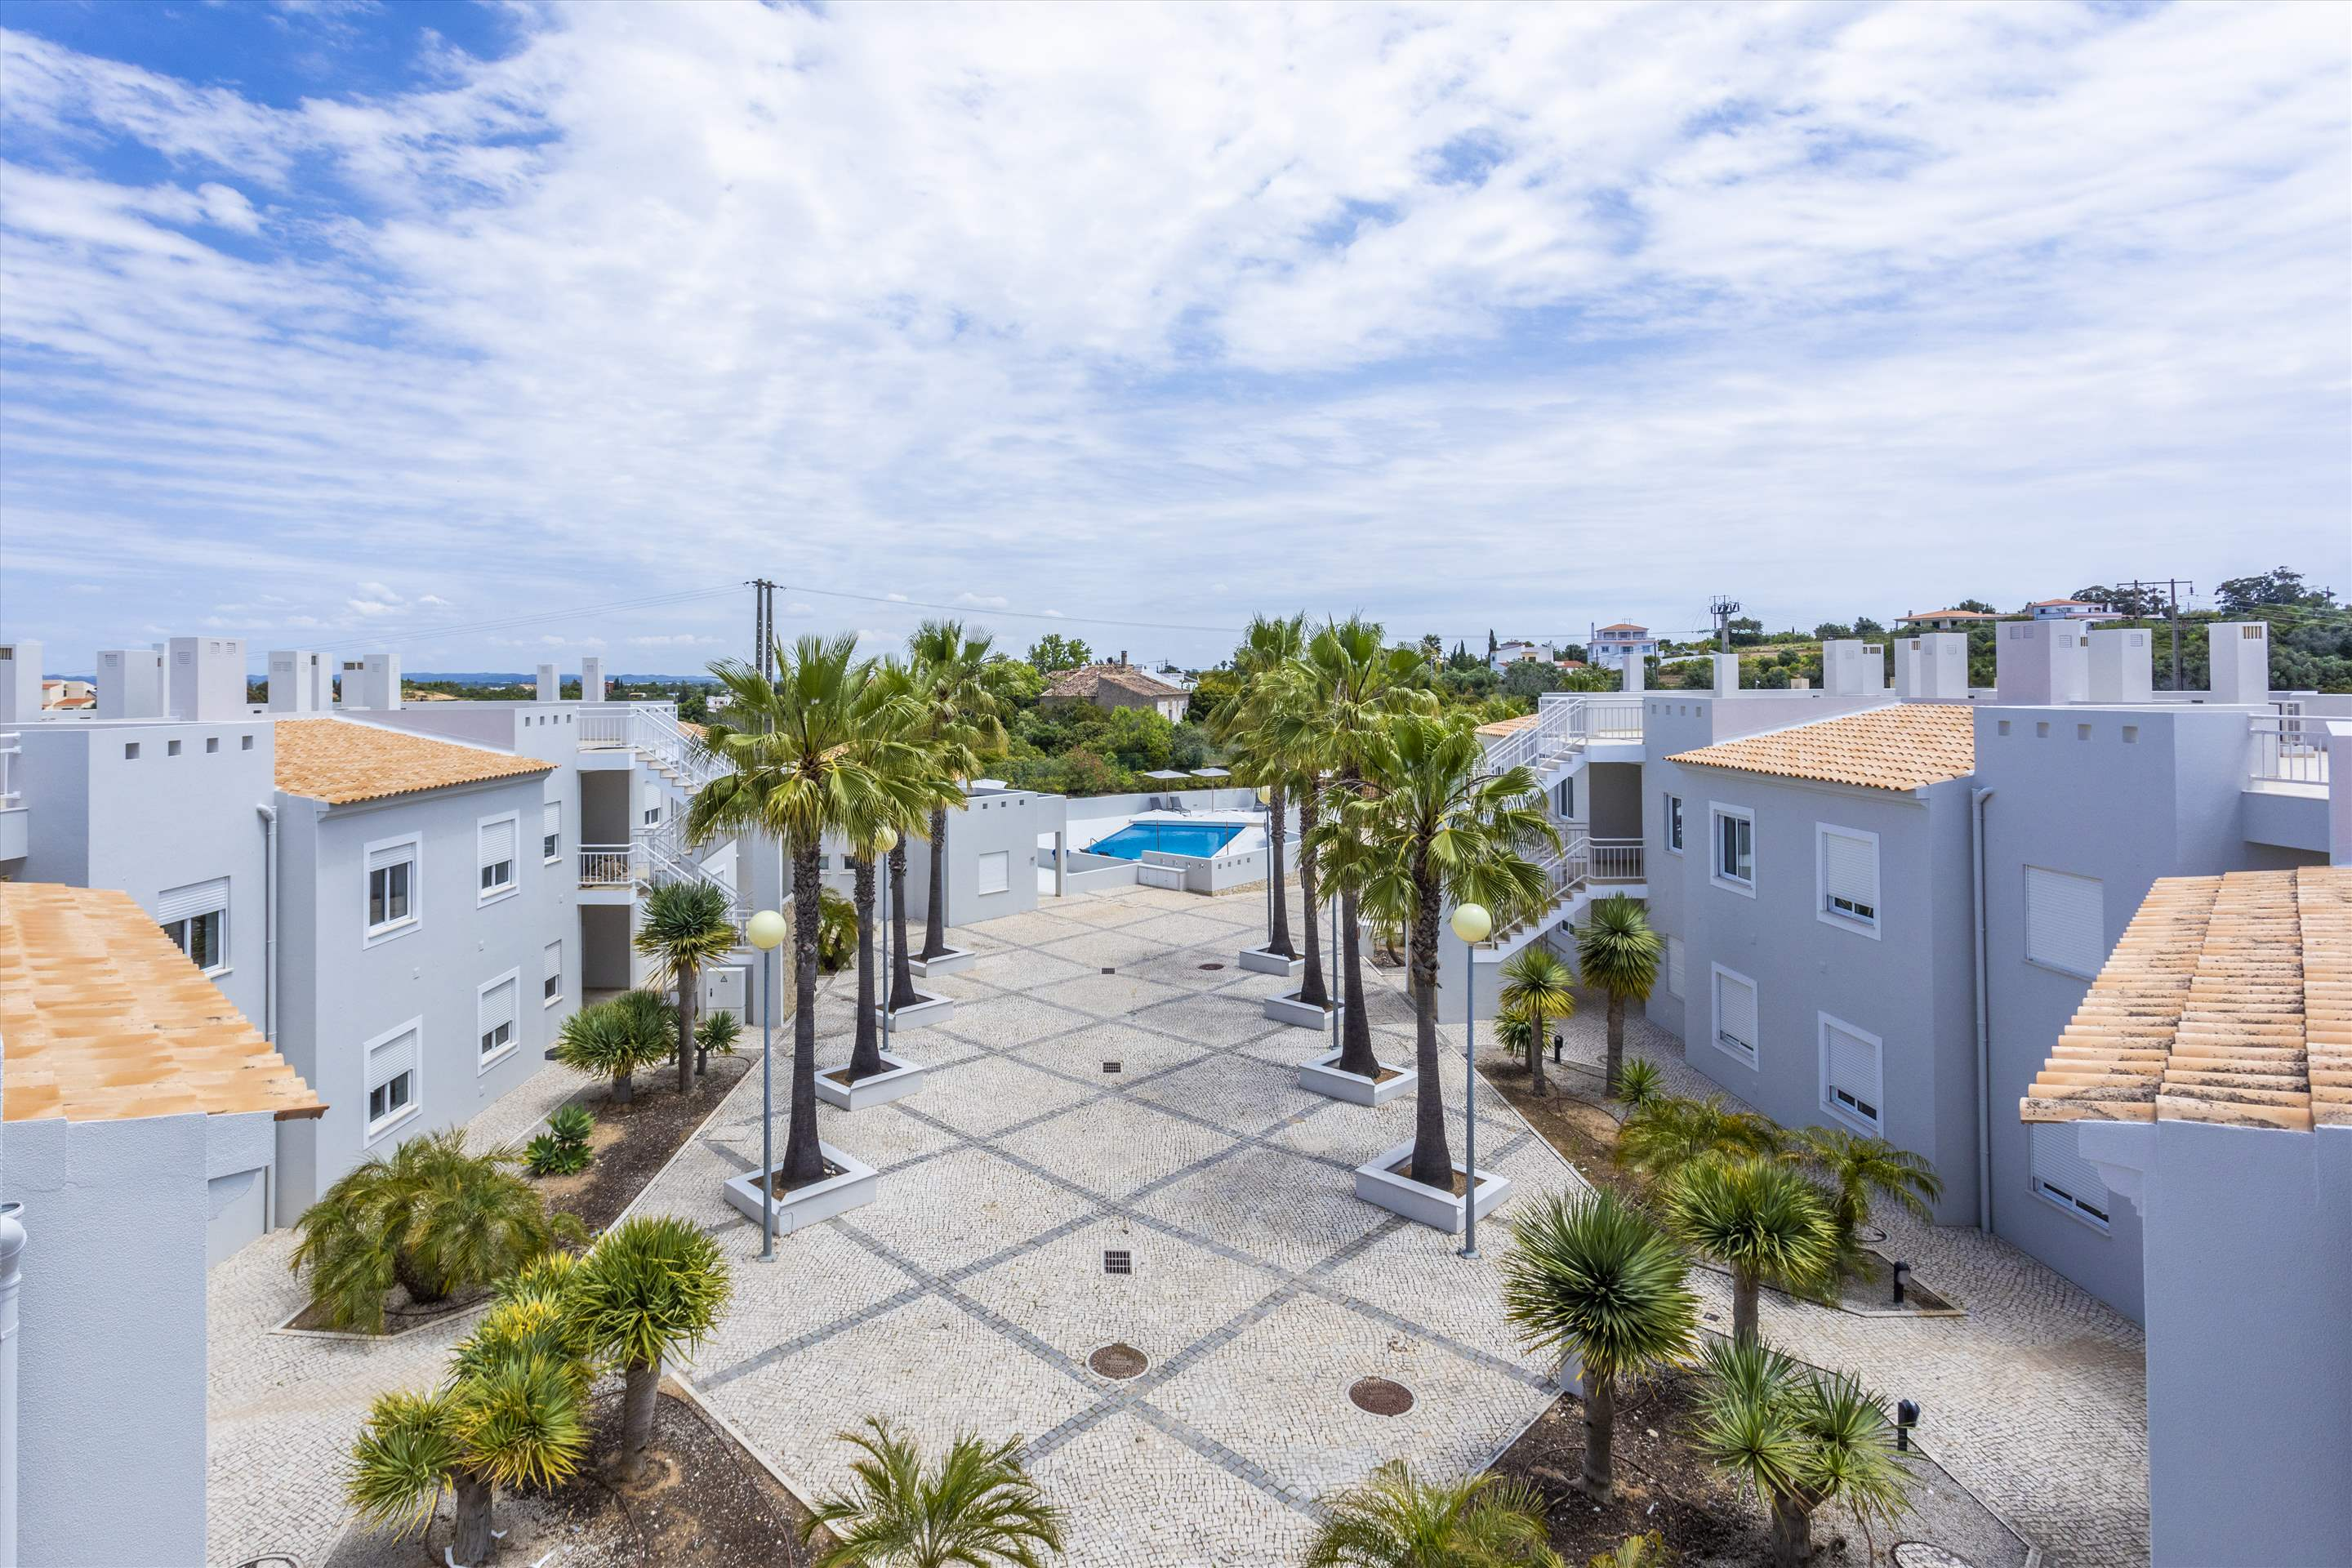 Placid Village, Two Bedroom Apartment , 2 bedroom apartment in Carvoeiro Area, Algarve Photo #19